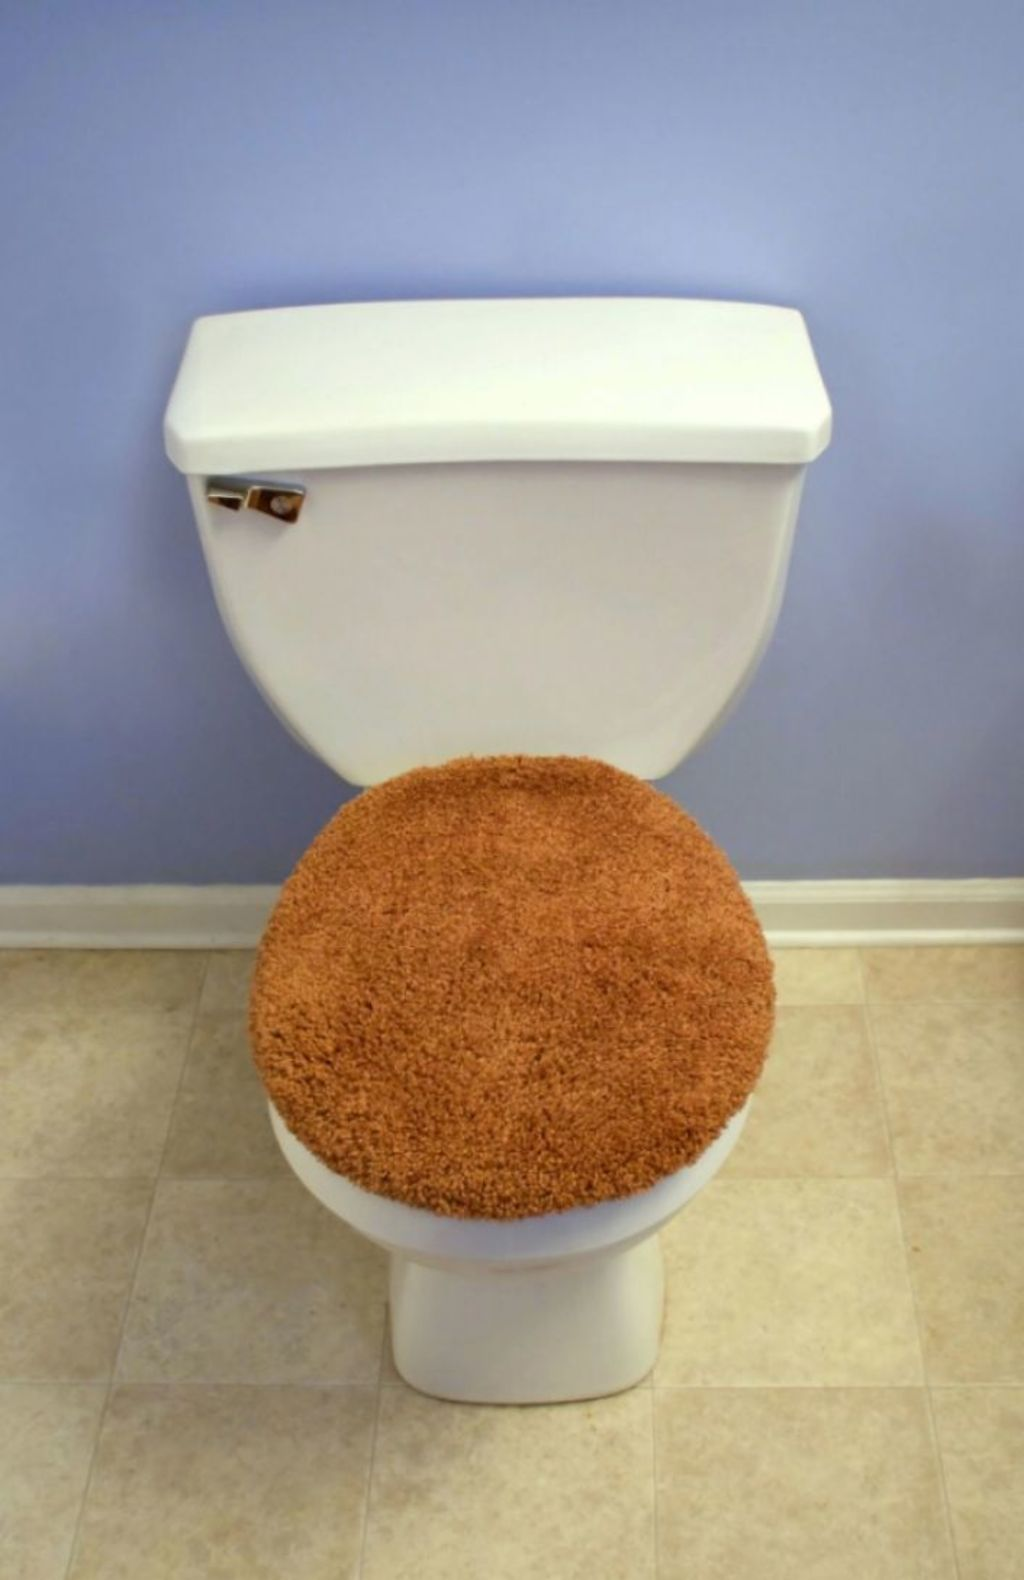 Fluffy toilet seat covers were voted as the worst interior design trend in the past 50 years. Photo: 123RF